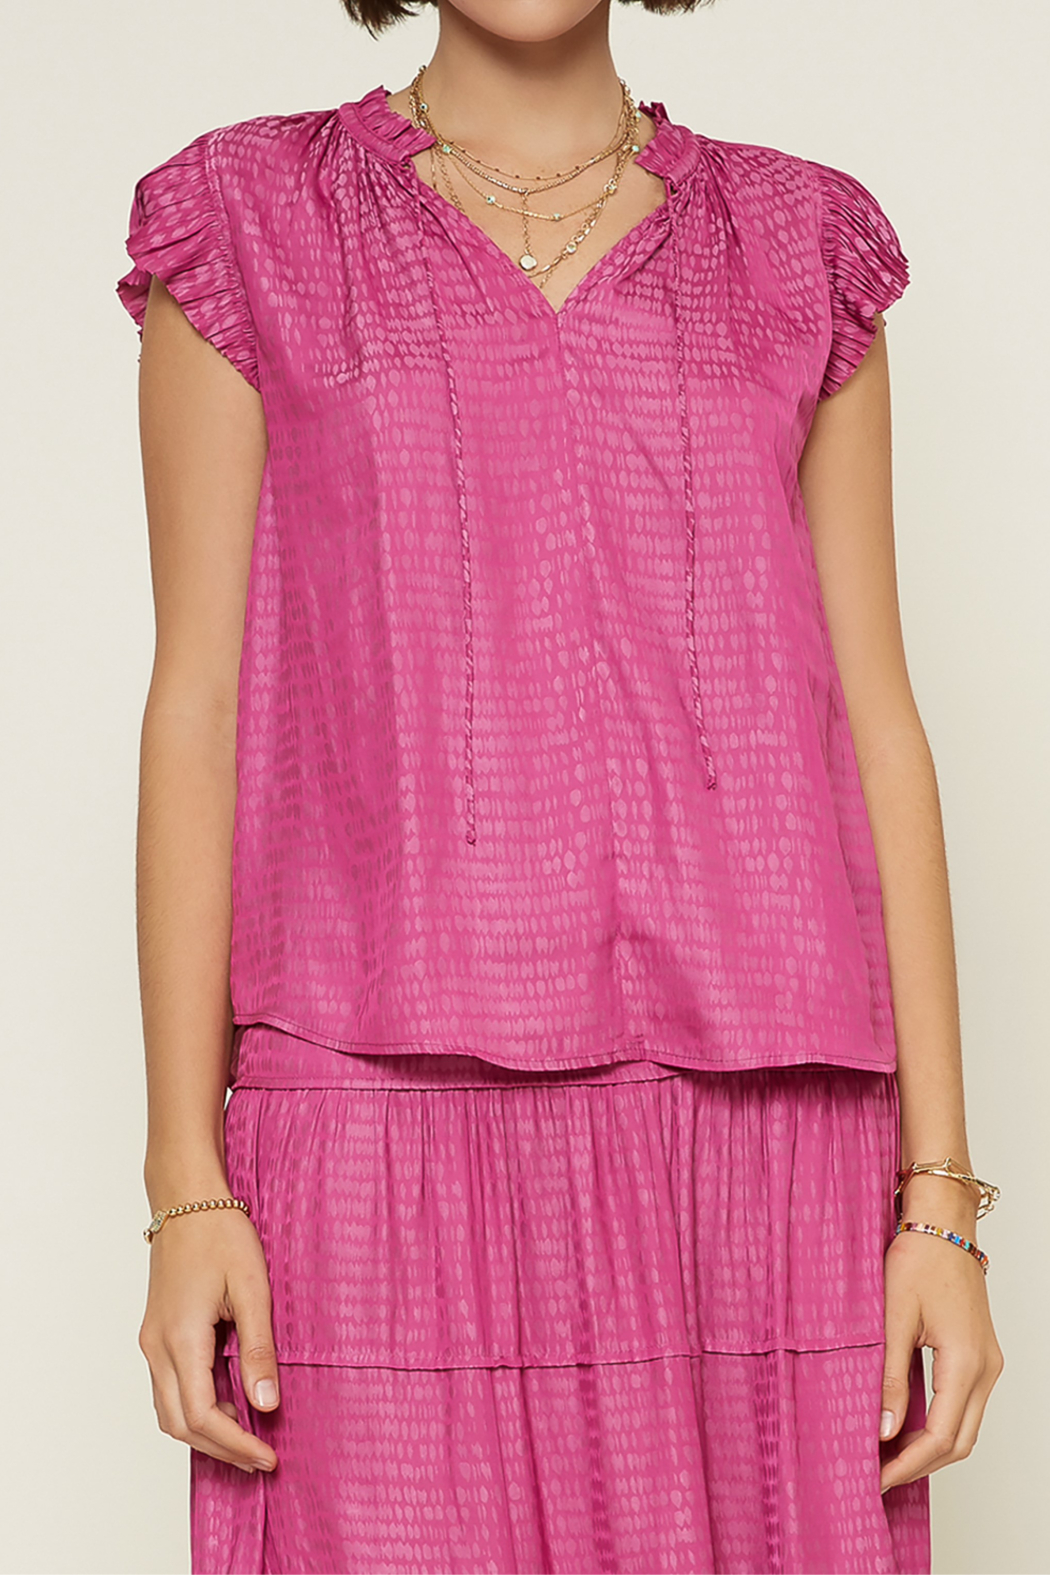 Current Air  Abstract V-Neck Pleated Cap Sleeve Blouse - Main Image